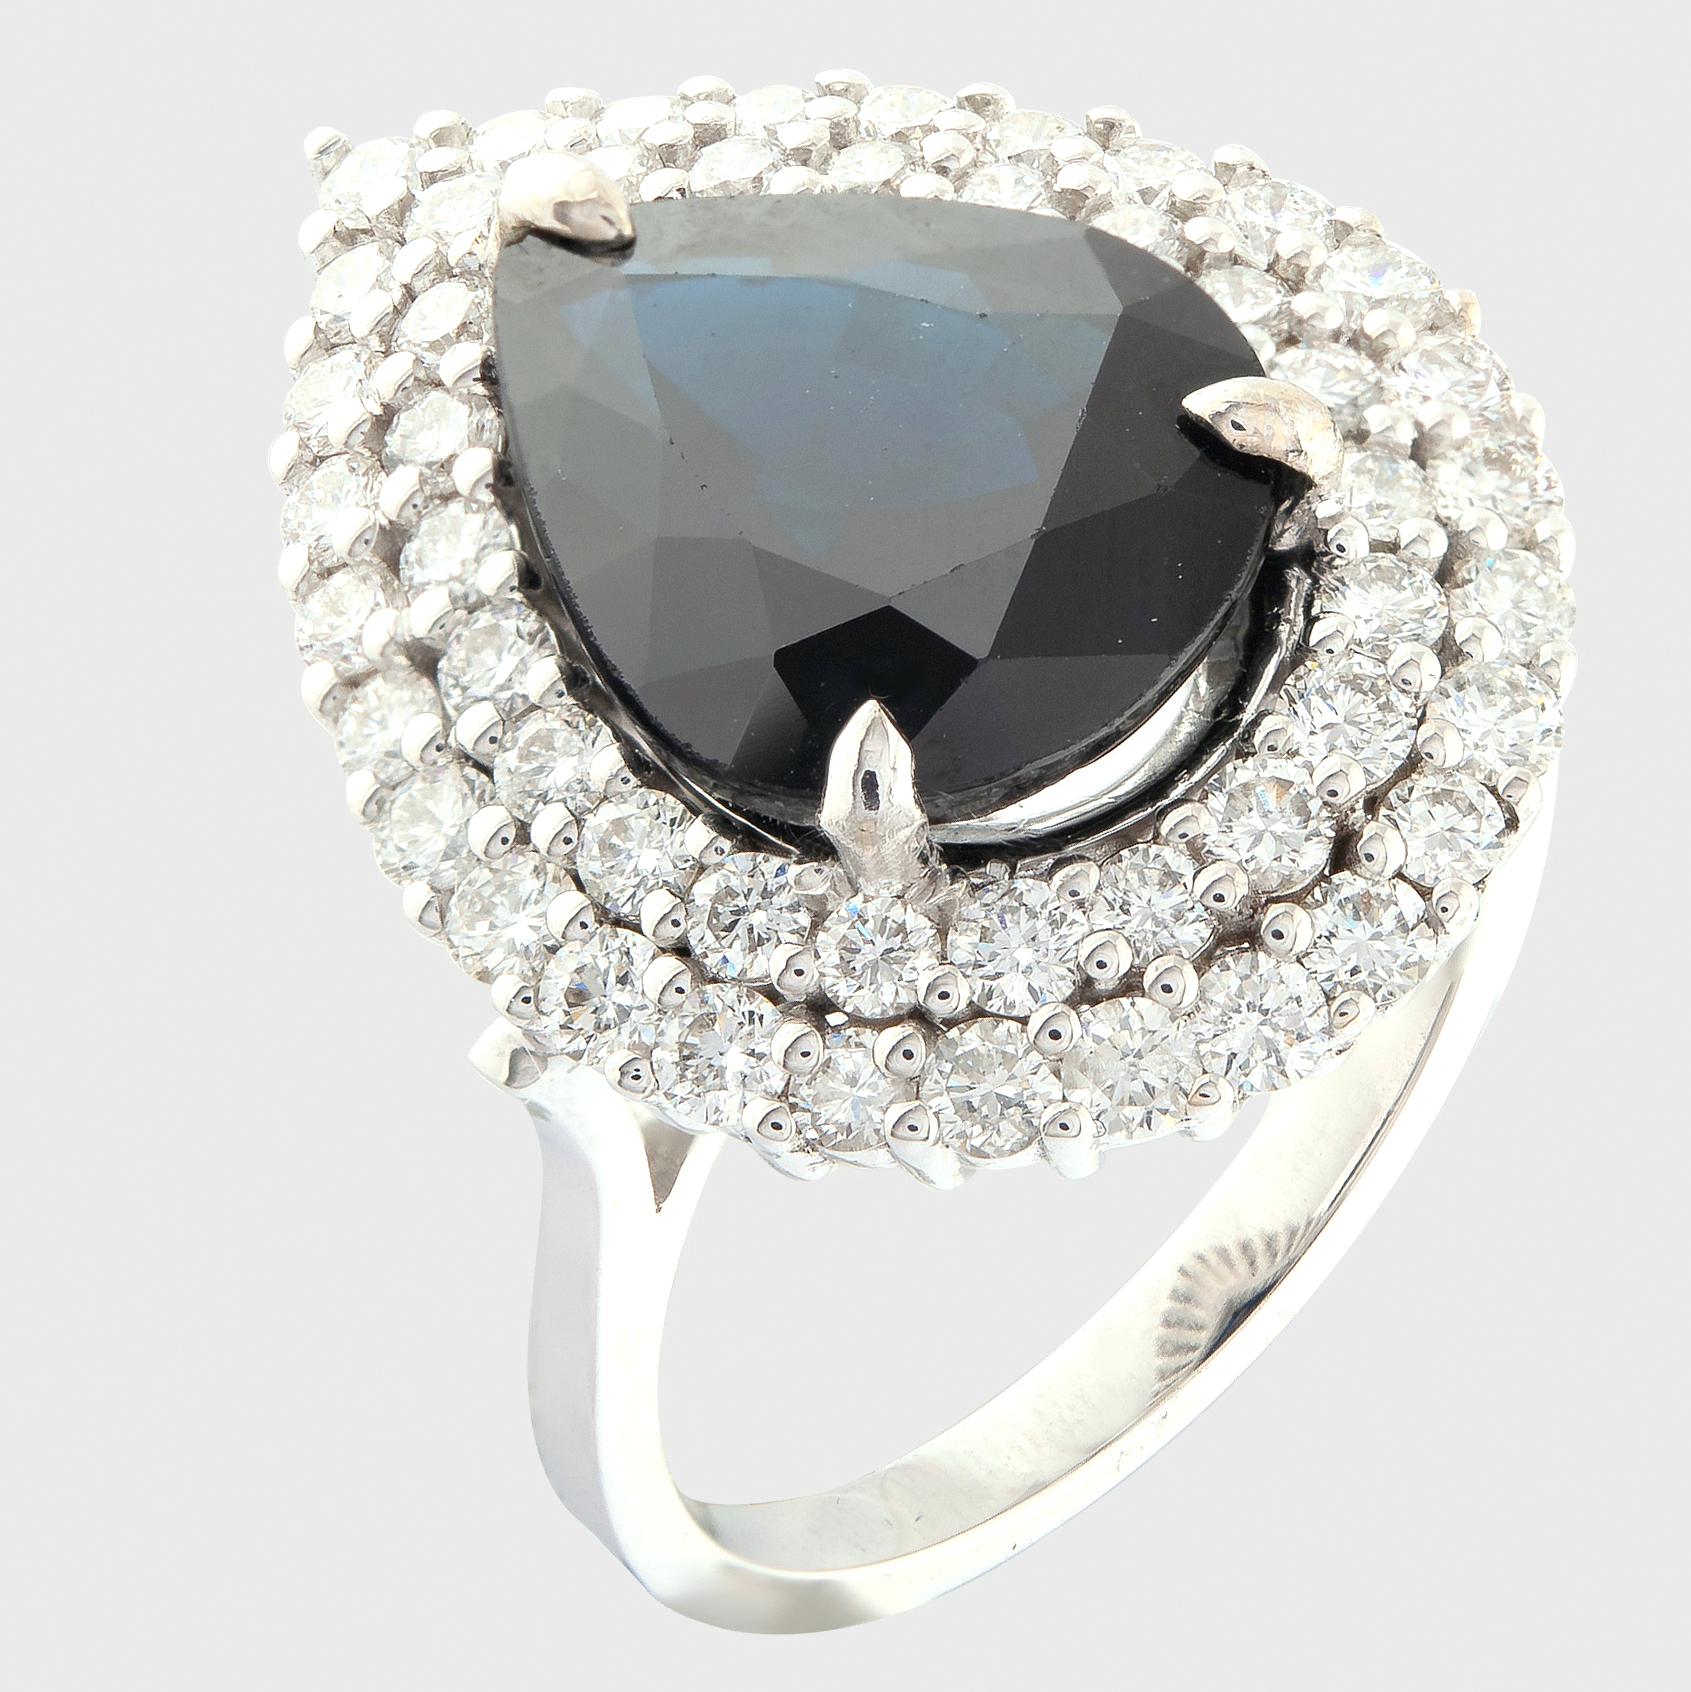 14K White Gold Cluster Ring 5,75 Ct. Natural Sapphire - 1,40 Ct. Diamond